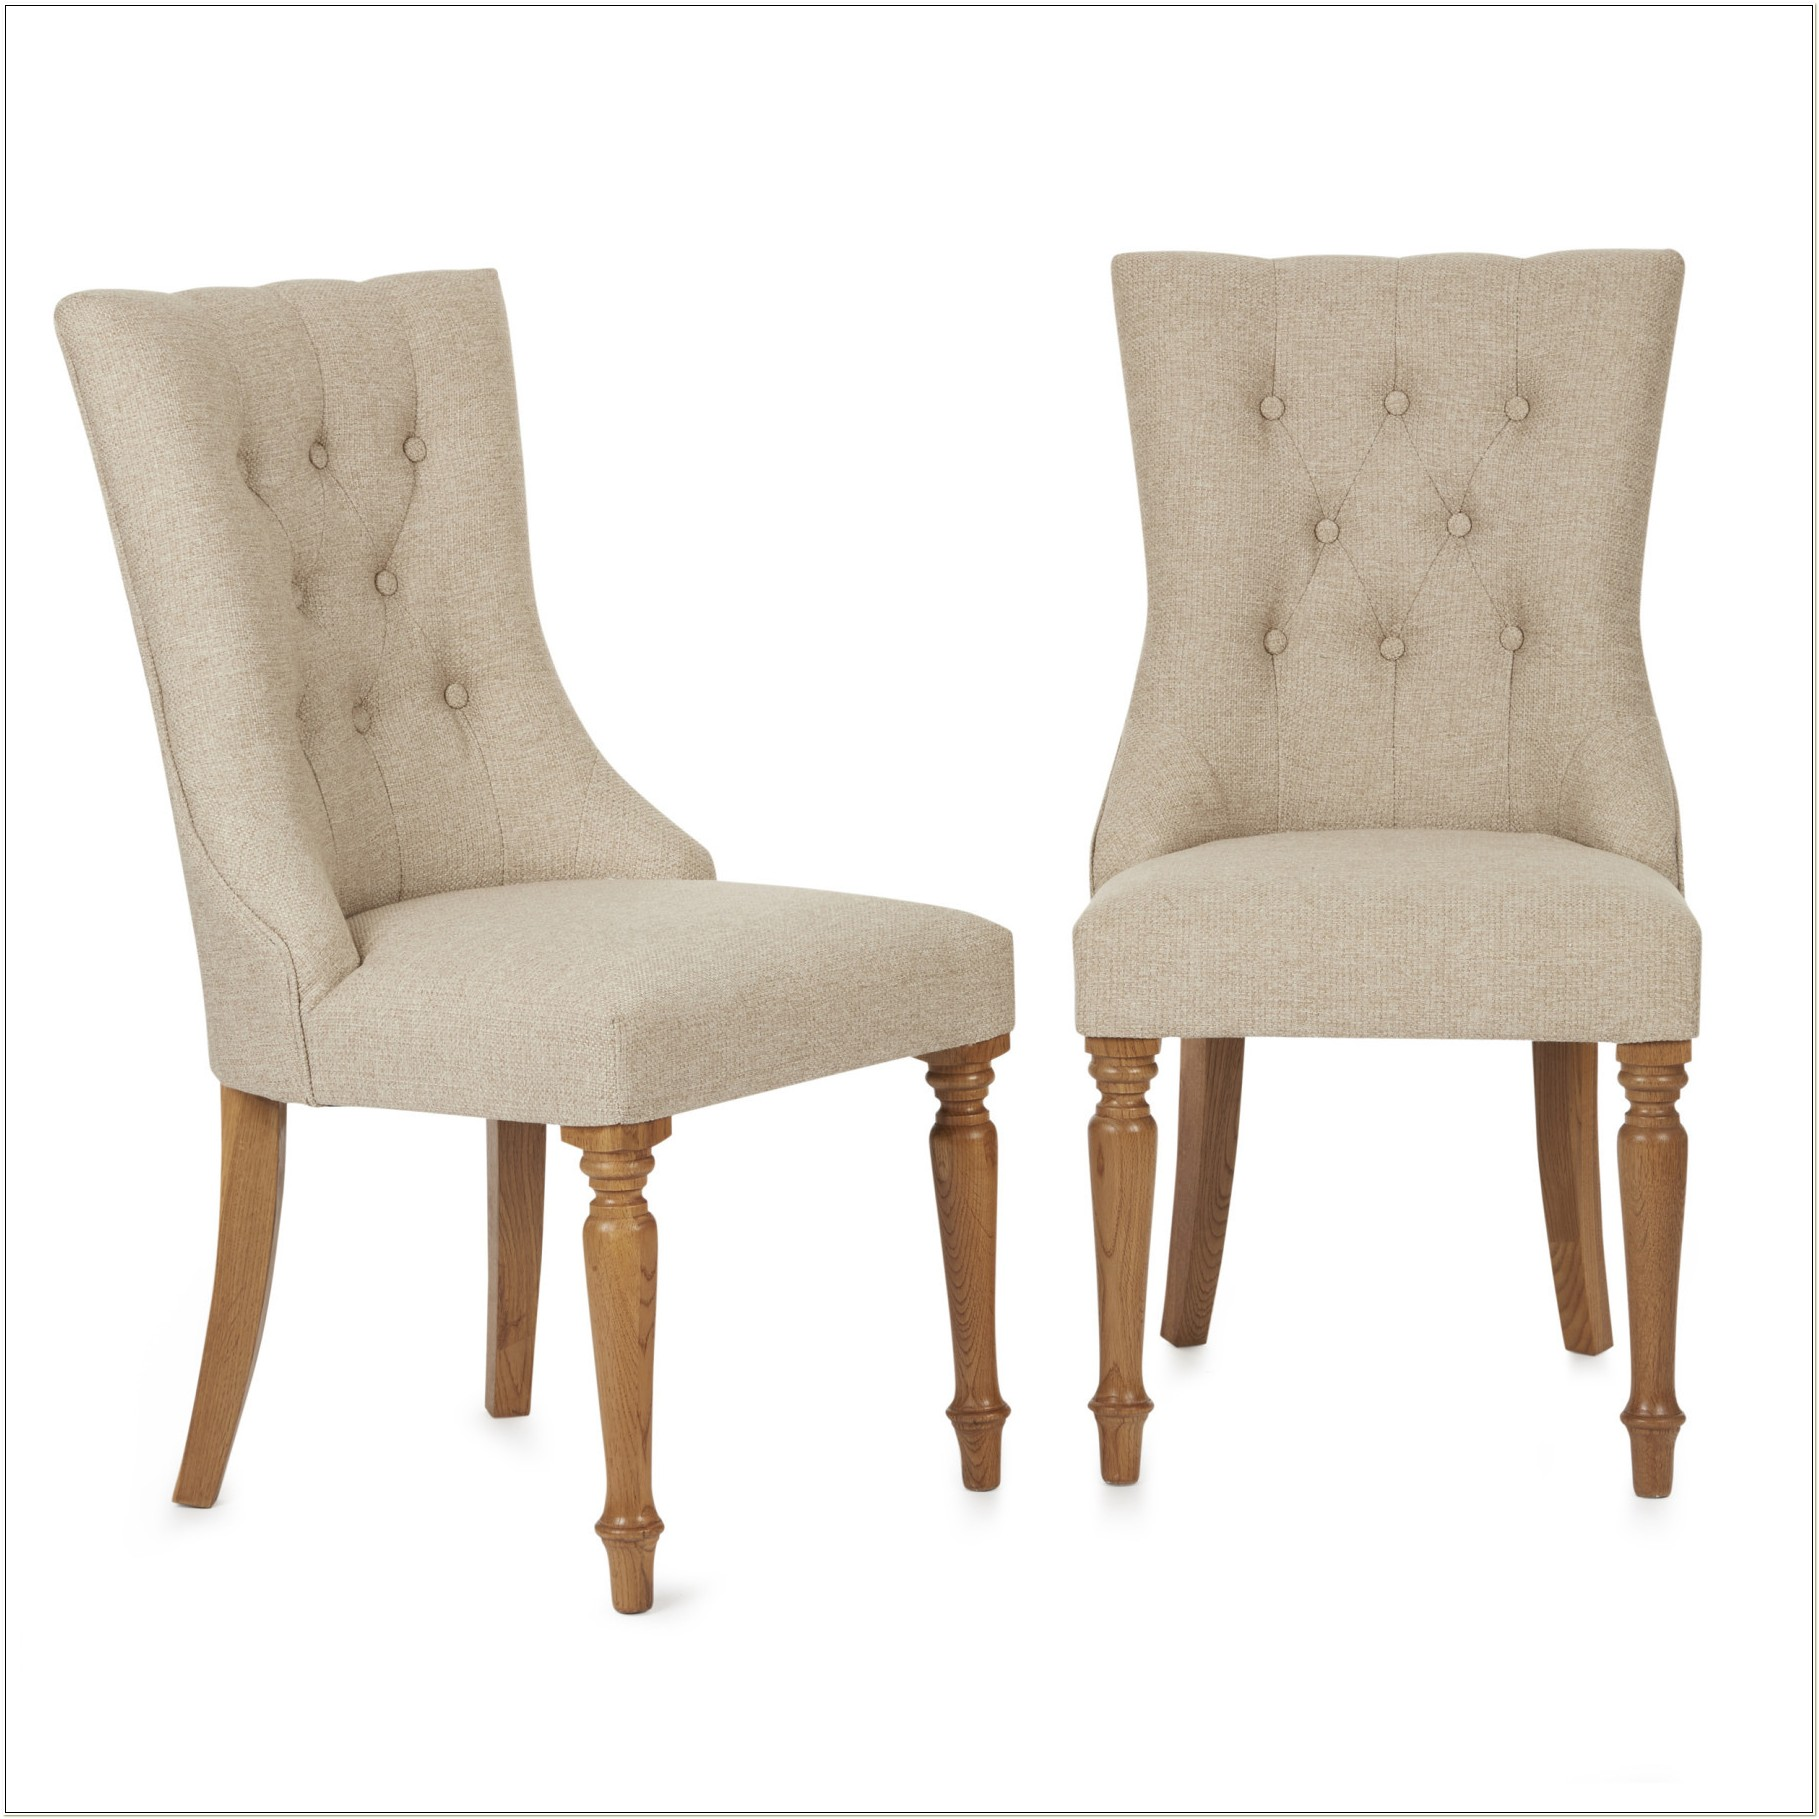 Laura Ashley Dining Chair Covers